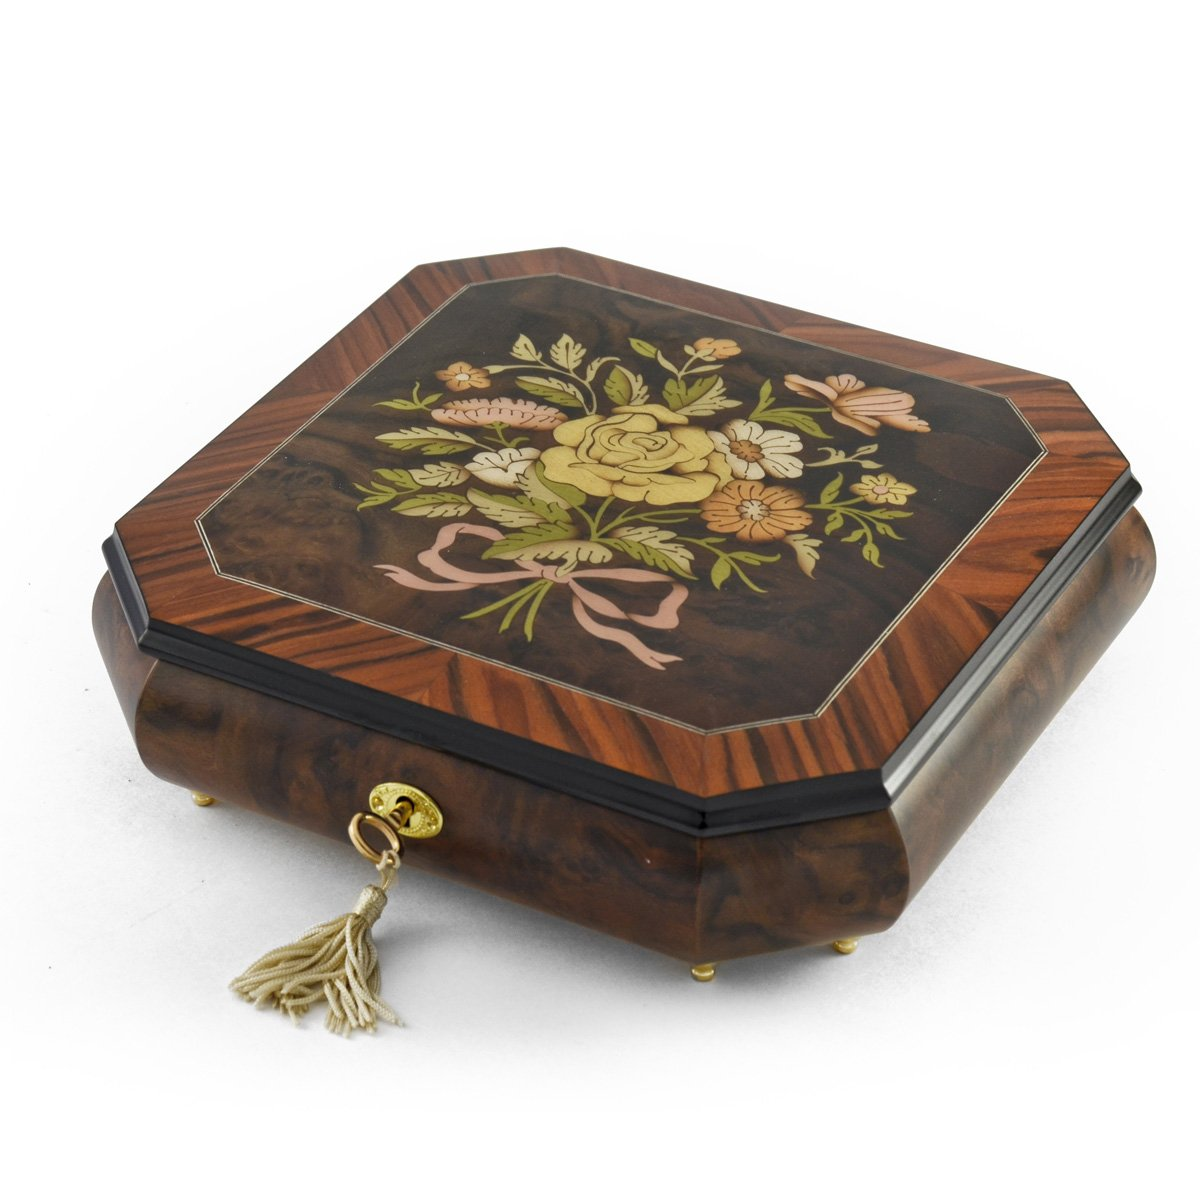 Charming Handcrafted Octagonal Italian Music Box with Floral Bouquet Inlay - Rock of Ages - Christian Version by MusicBoxAttic